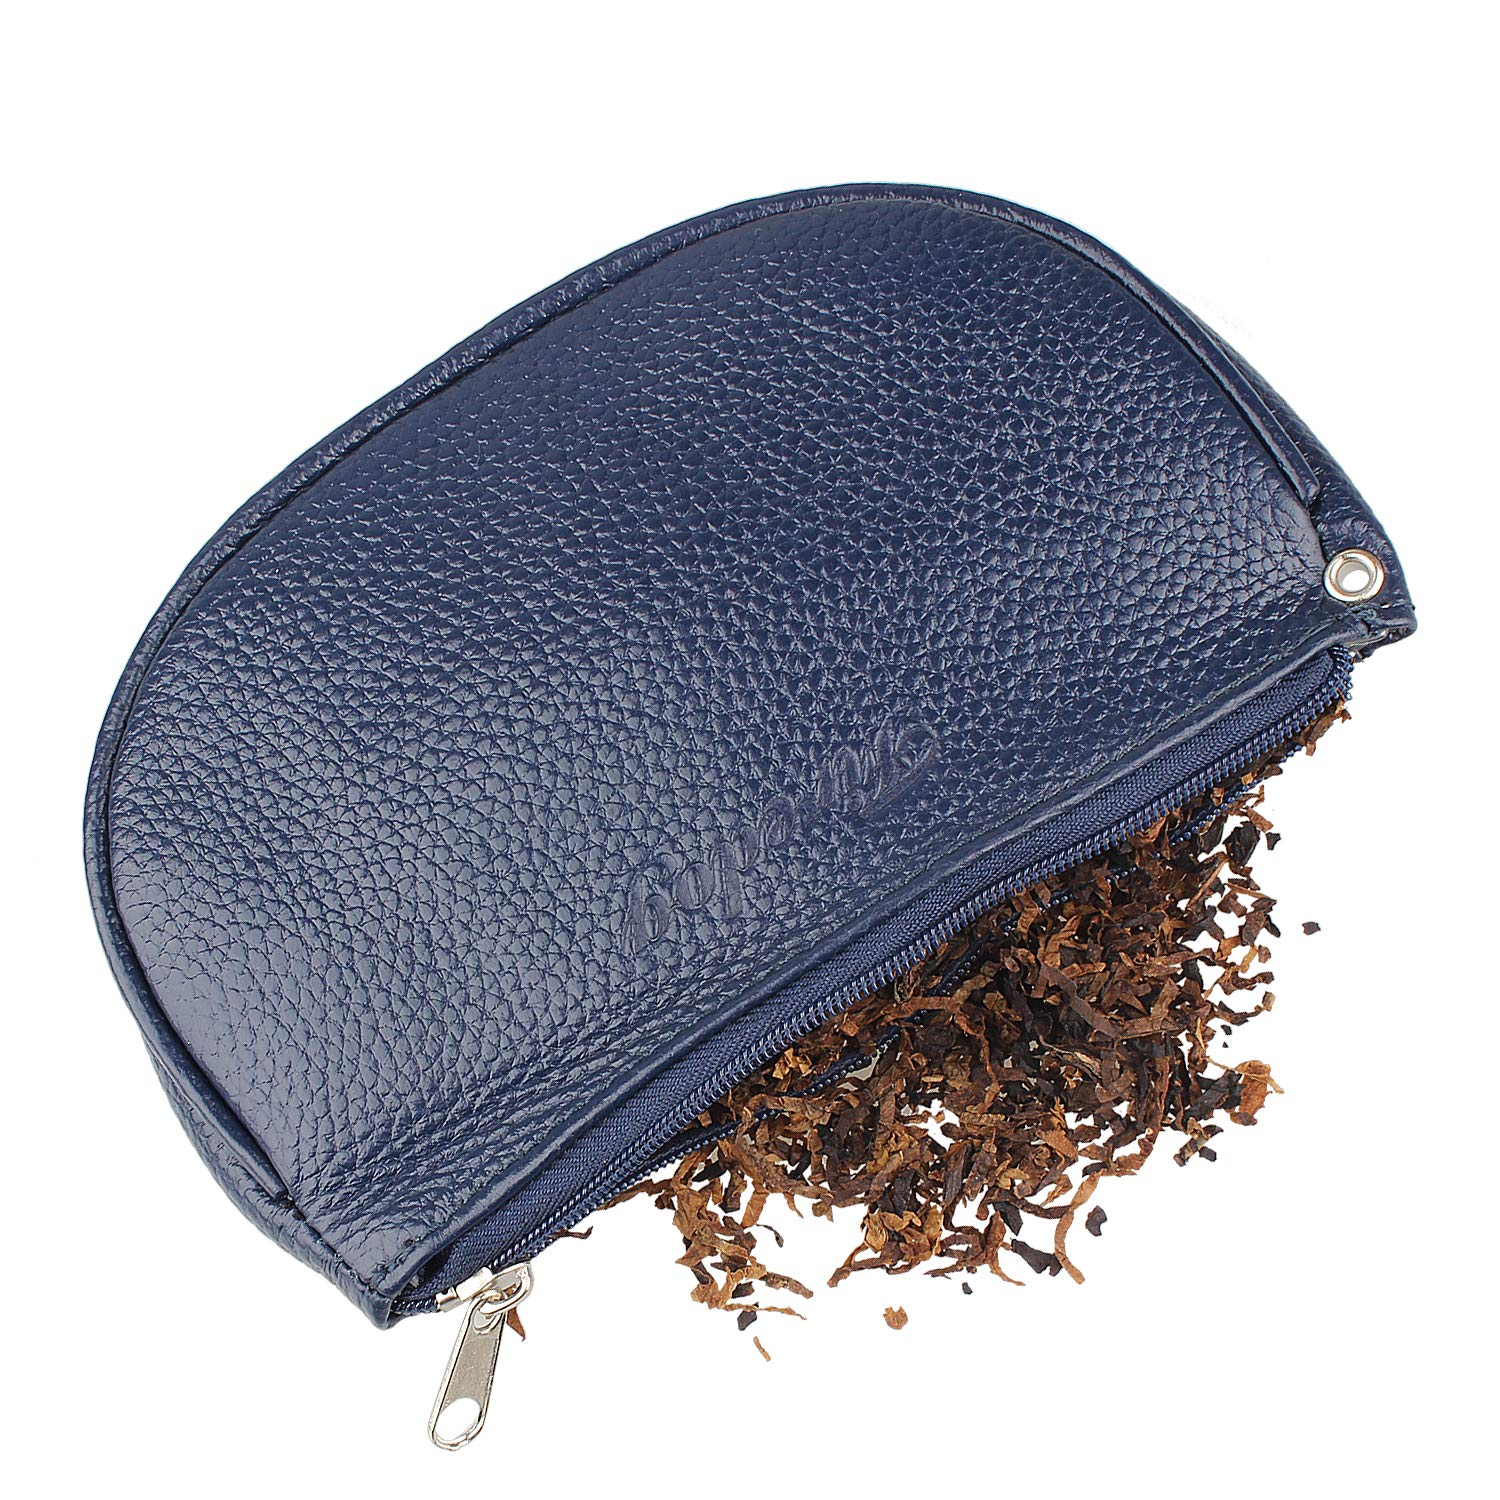 "2nd Generation Leather Cigarette Smoking Pipe Tobacco Pouch Case Bag with Rubber Lining to Preserve Freshness(No Gap at end) Middle Size (3.75'' Height X 6.25"" Width) …"